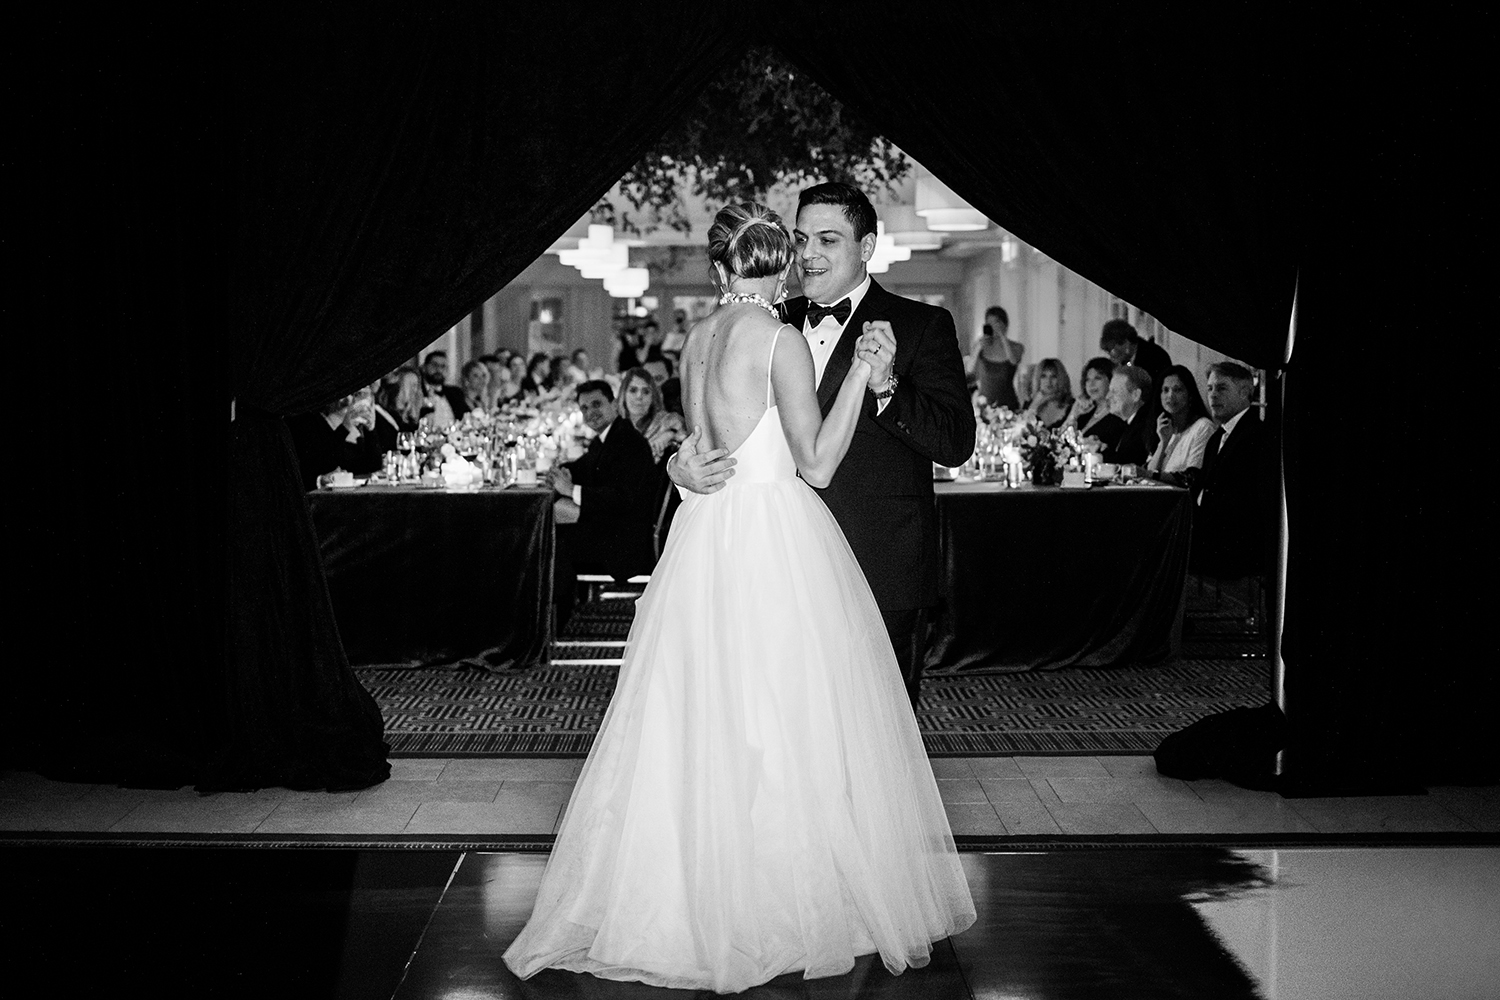 First dance at the rooftop of the Hay Adams Hotel in Washington DC